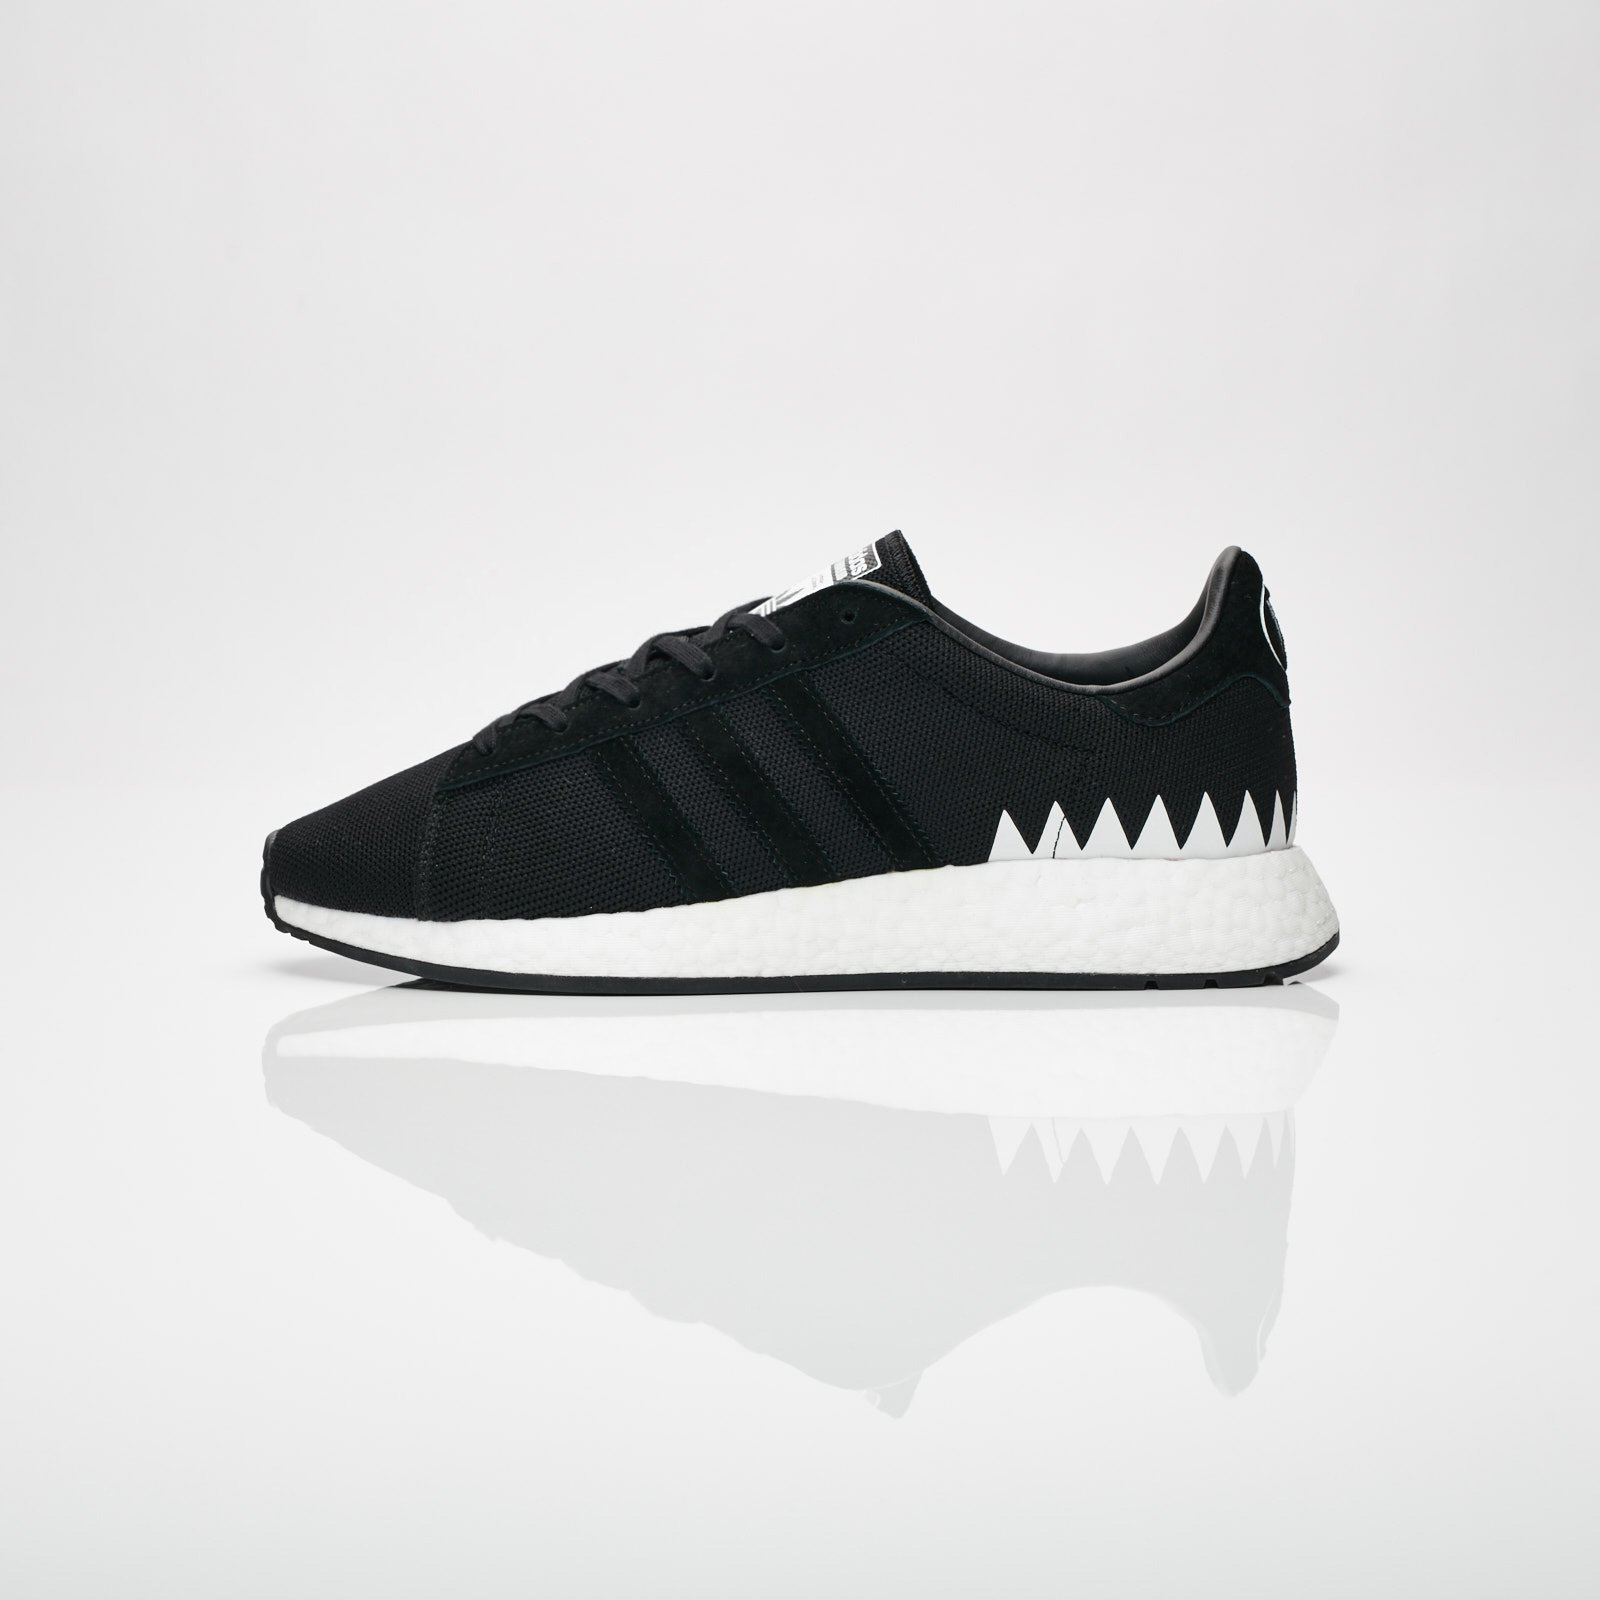 aec5984e8 adidas Chop Shop x Neighborhood - Da8839 - Sneakersnstuff